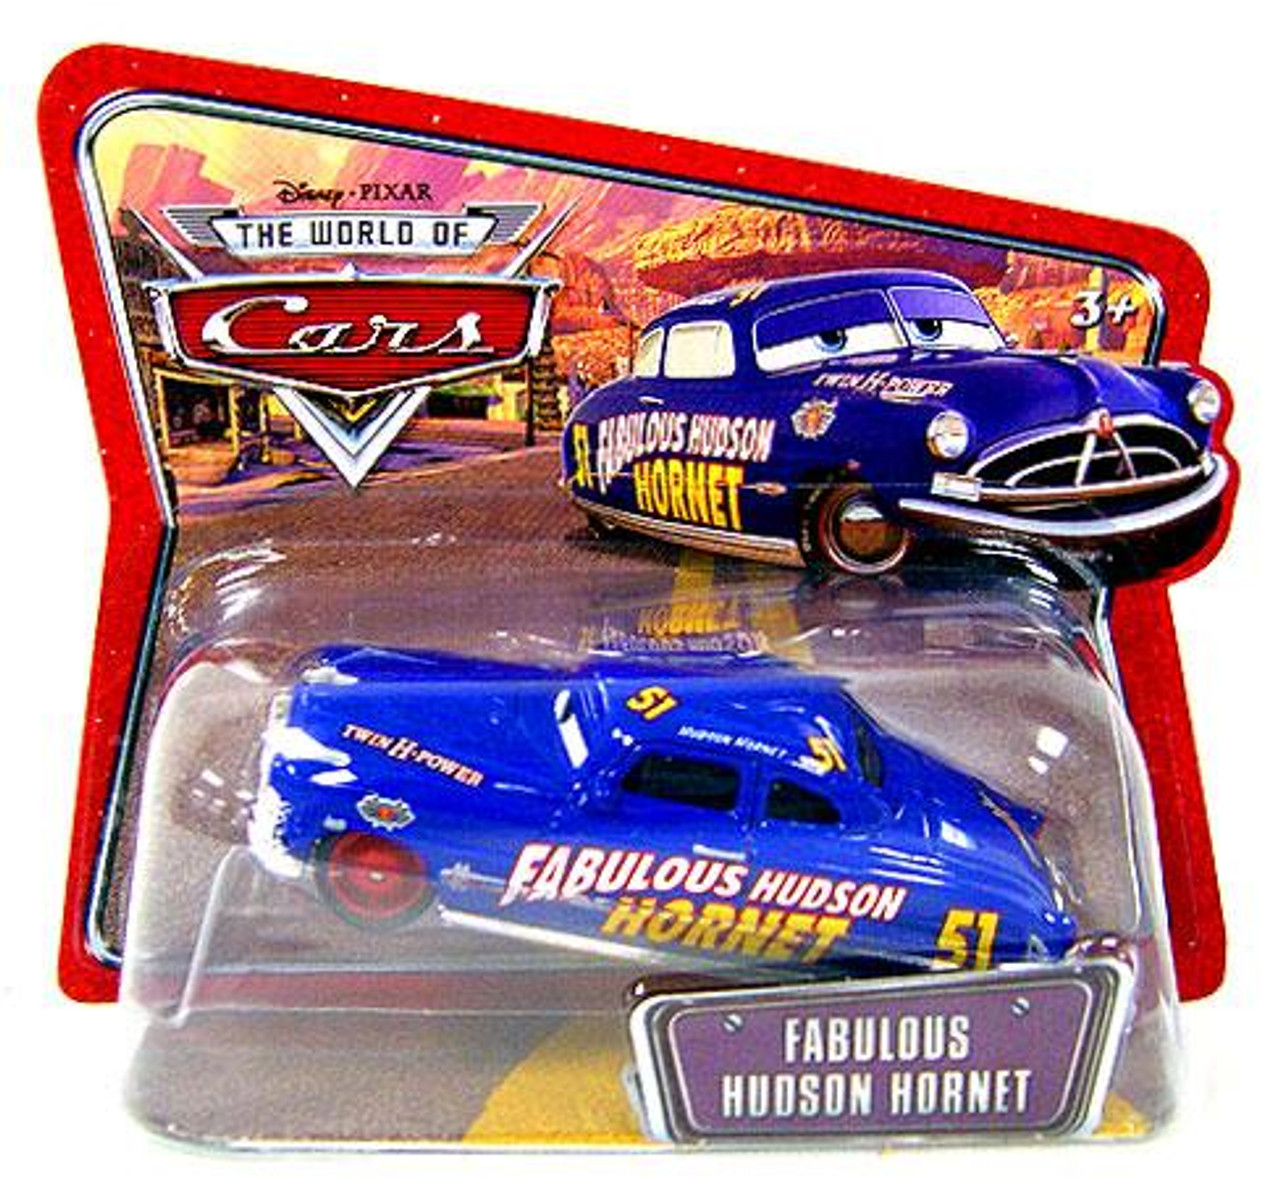 Disney Cars The World of Cars Series 1 Fabulous Husdon Hornet Diecast Car [Checkout Lane Package]